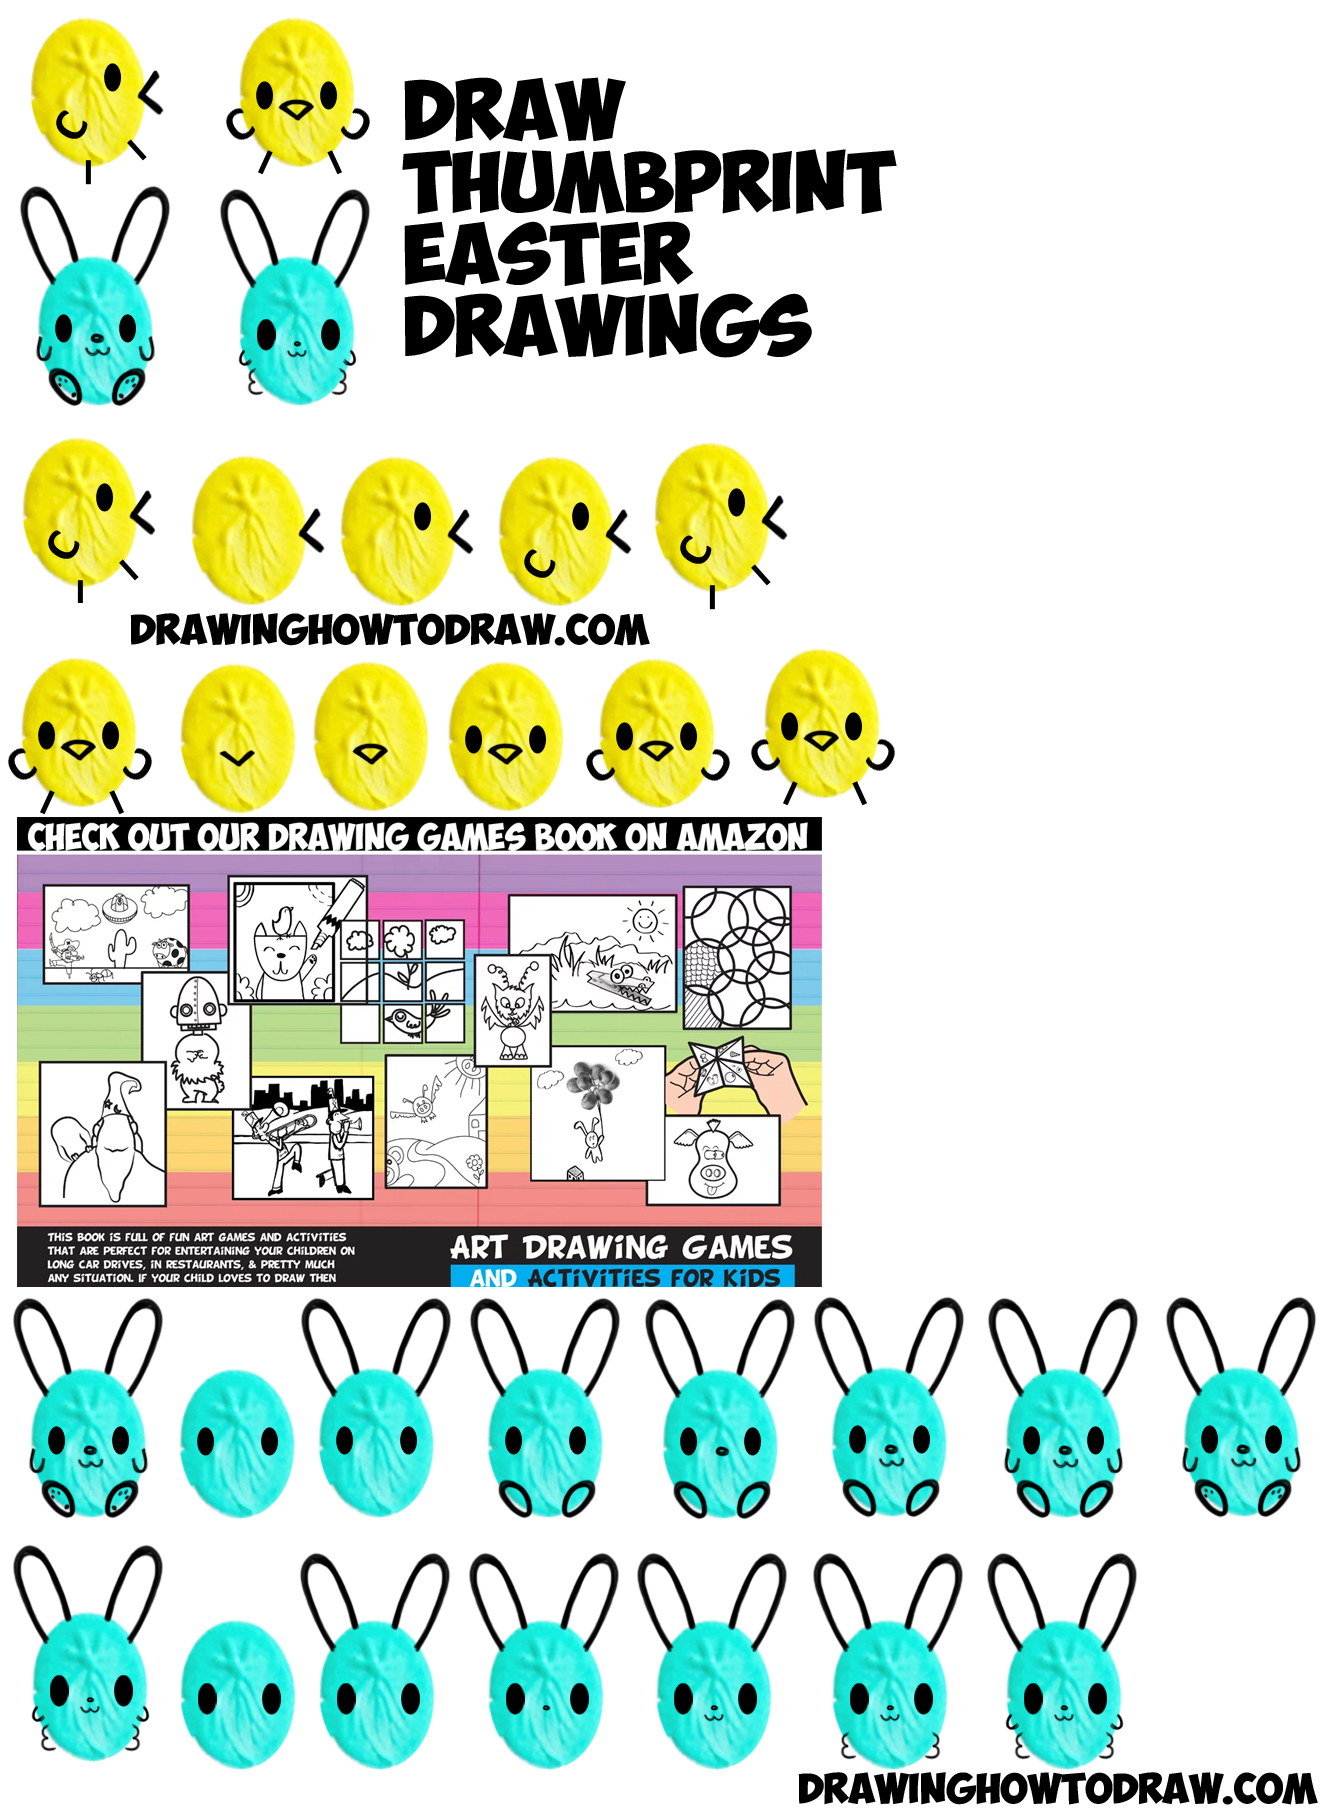 how to draw cute easter drawings from thumbprints fingerprints or